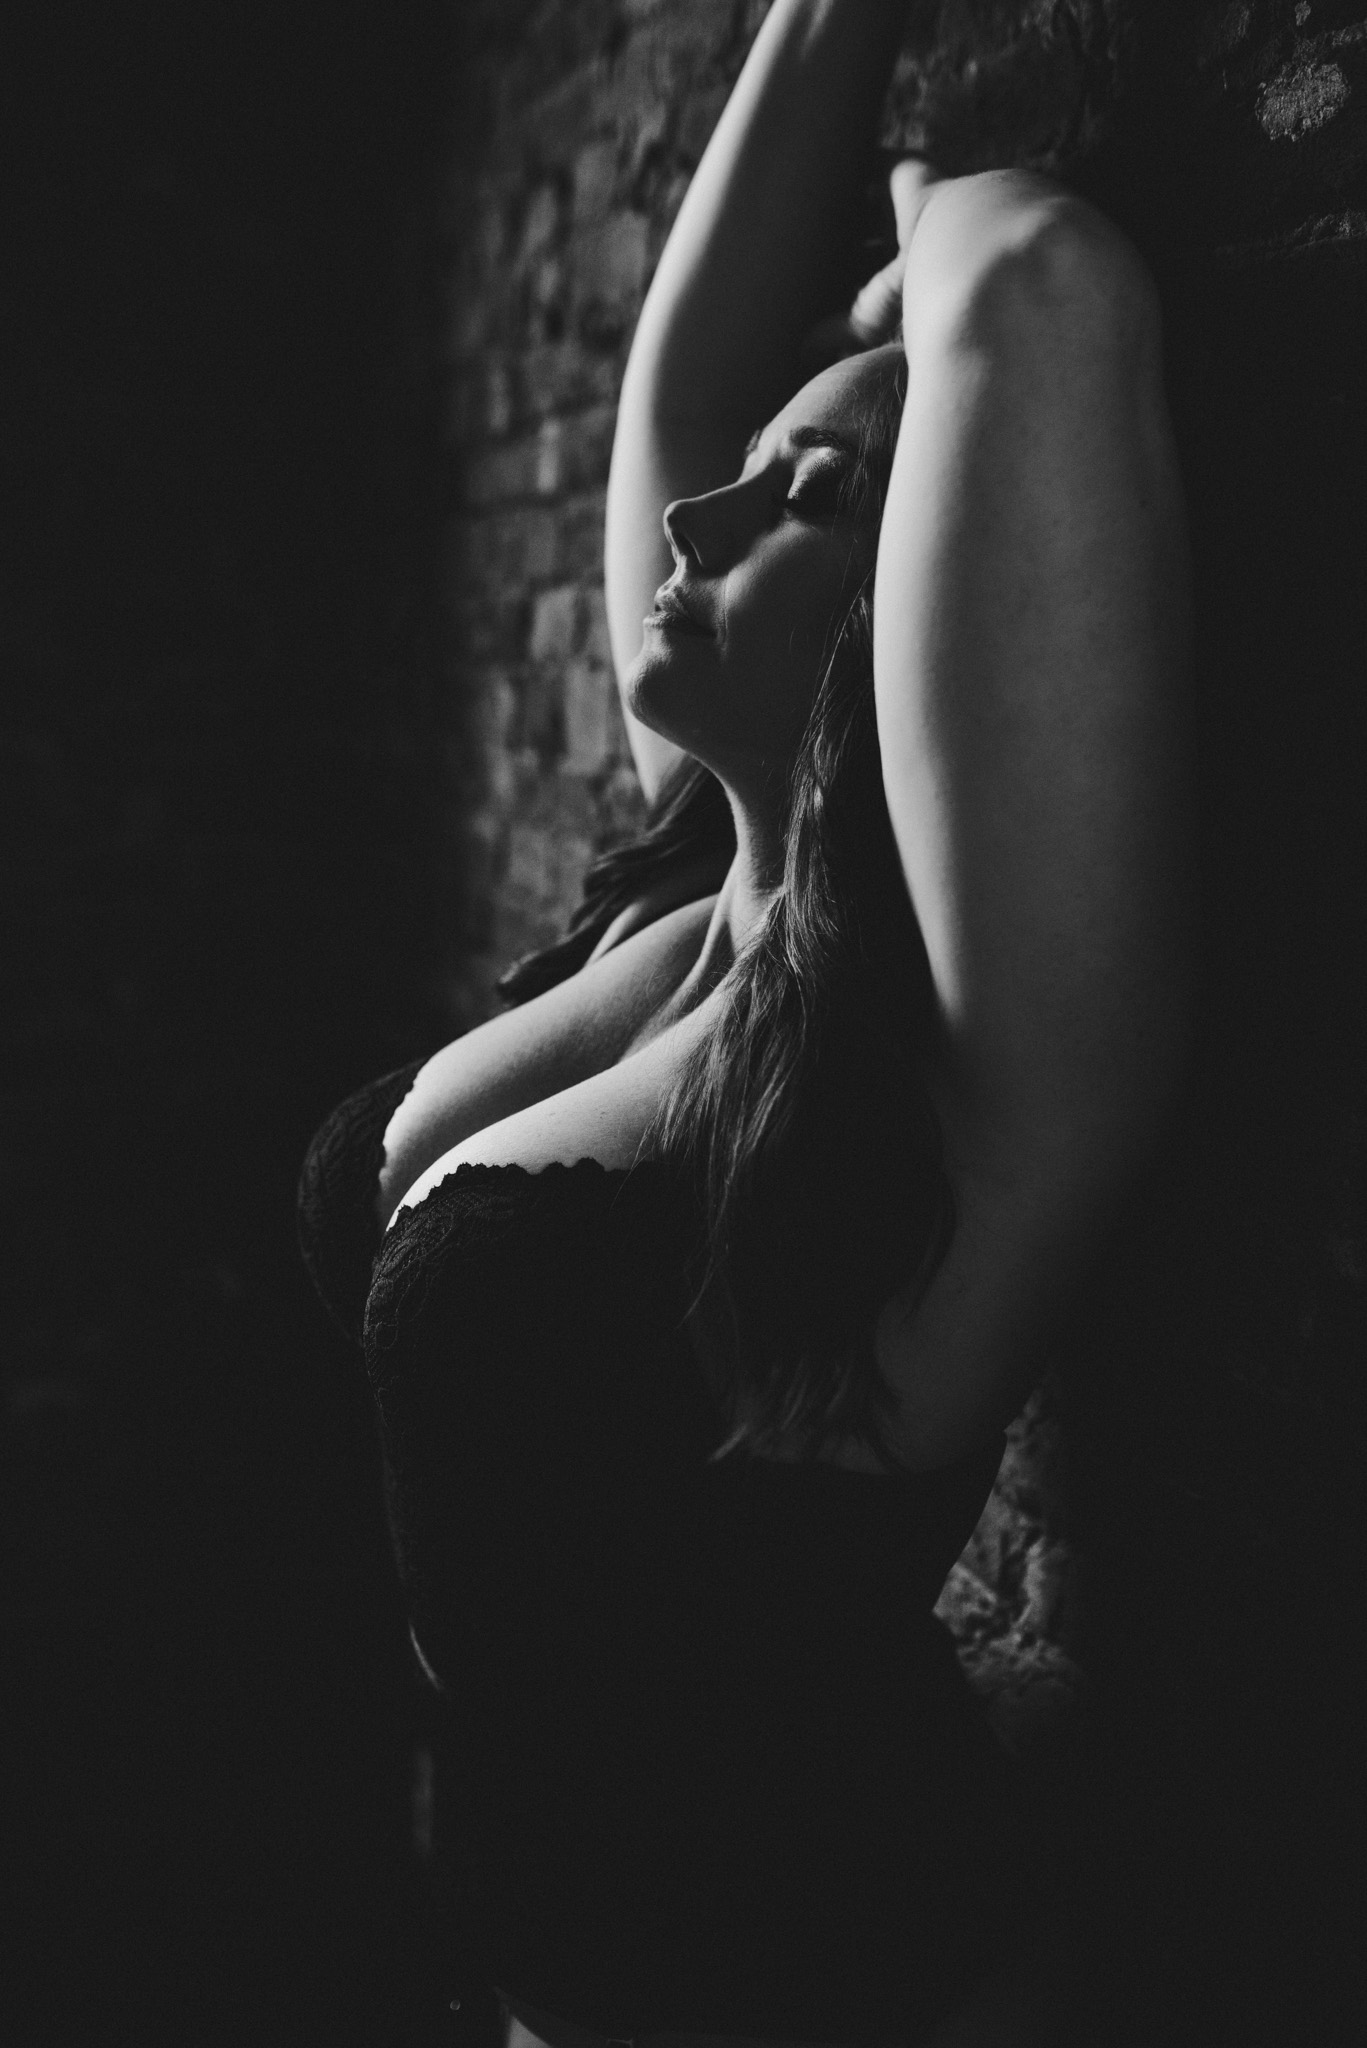 nashville-tn-boudoir-session-intimate-photos-9.jpg